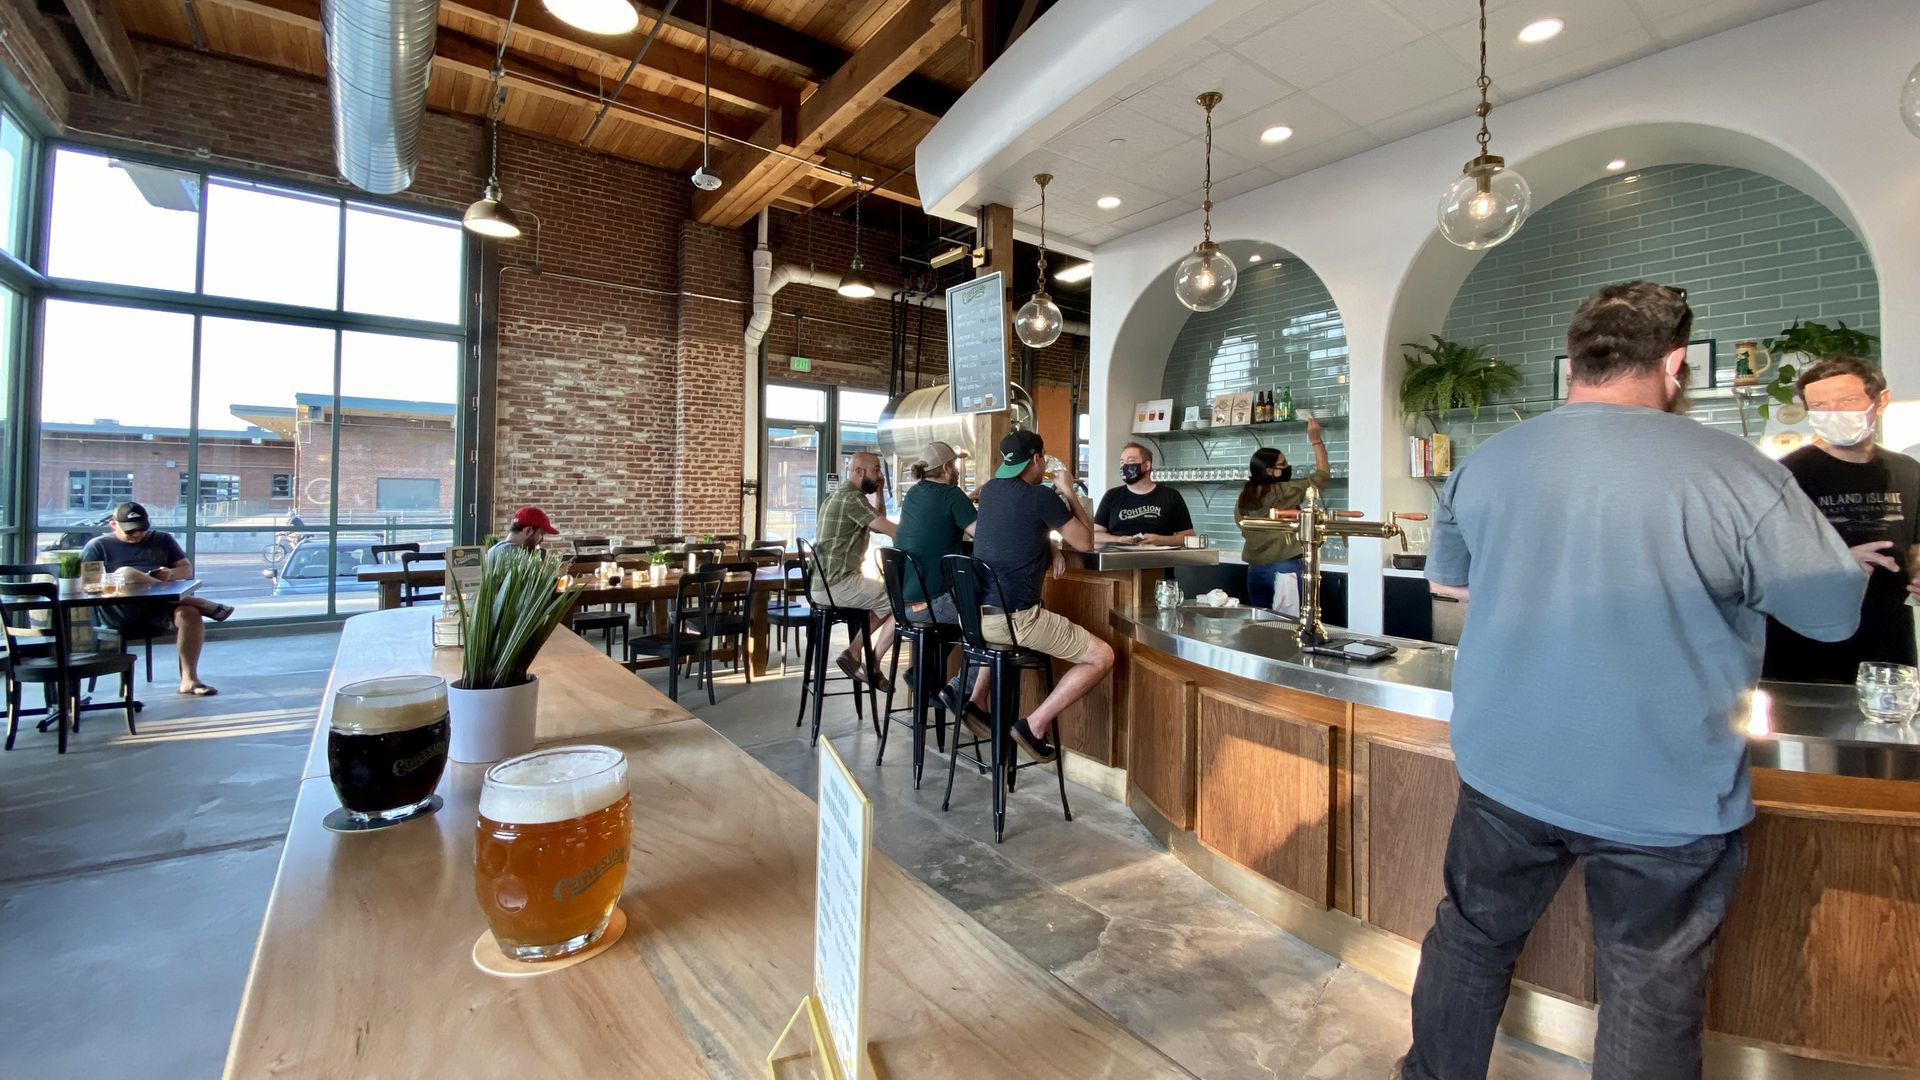 Two beers sit on a table at a Denver brewery with customers drinking in the background.